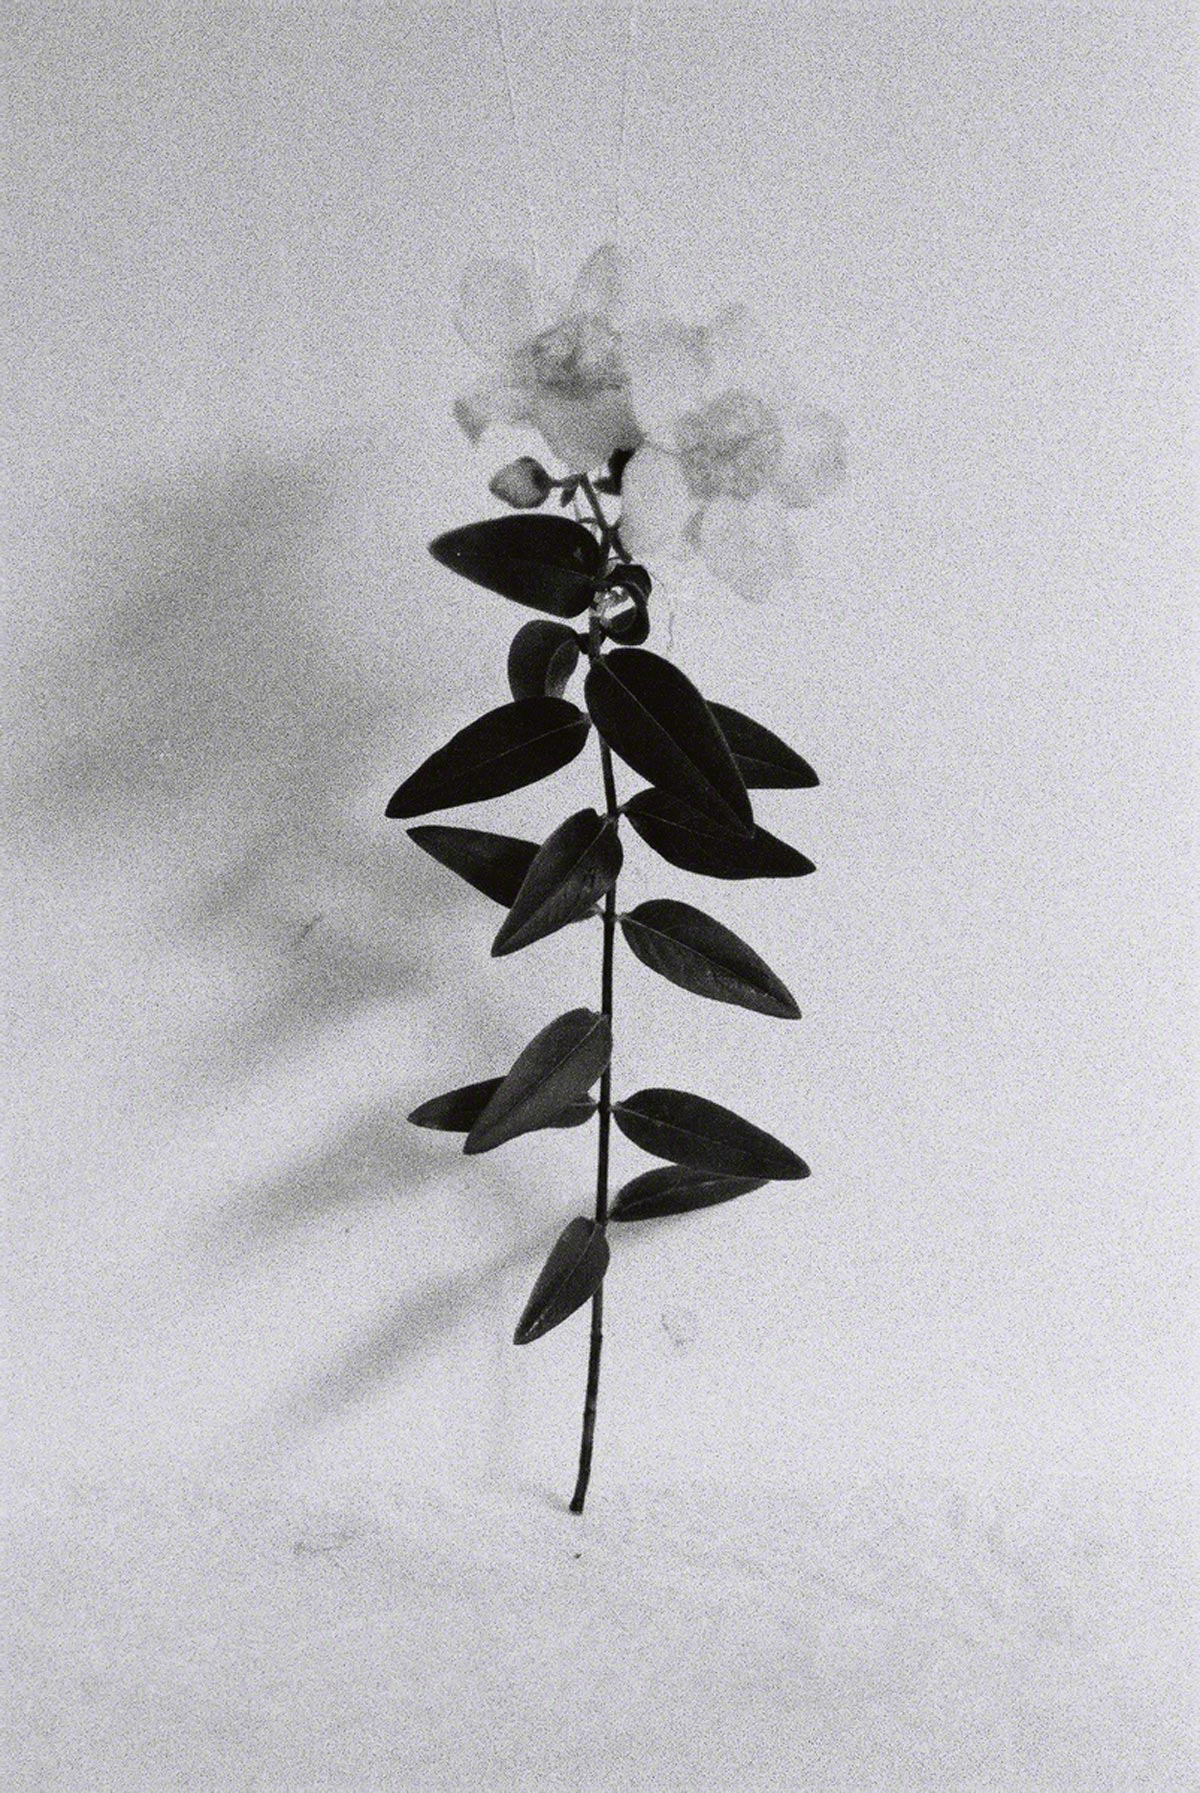 St-John's-wort in the studio #2, silver photograph, Marie-Claire Raoul